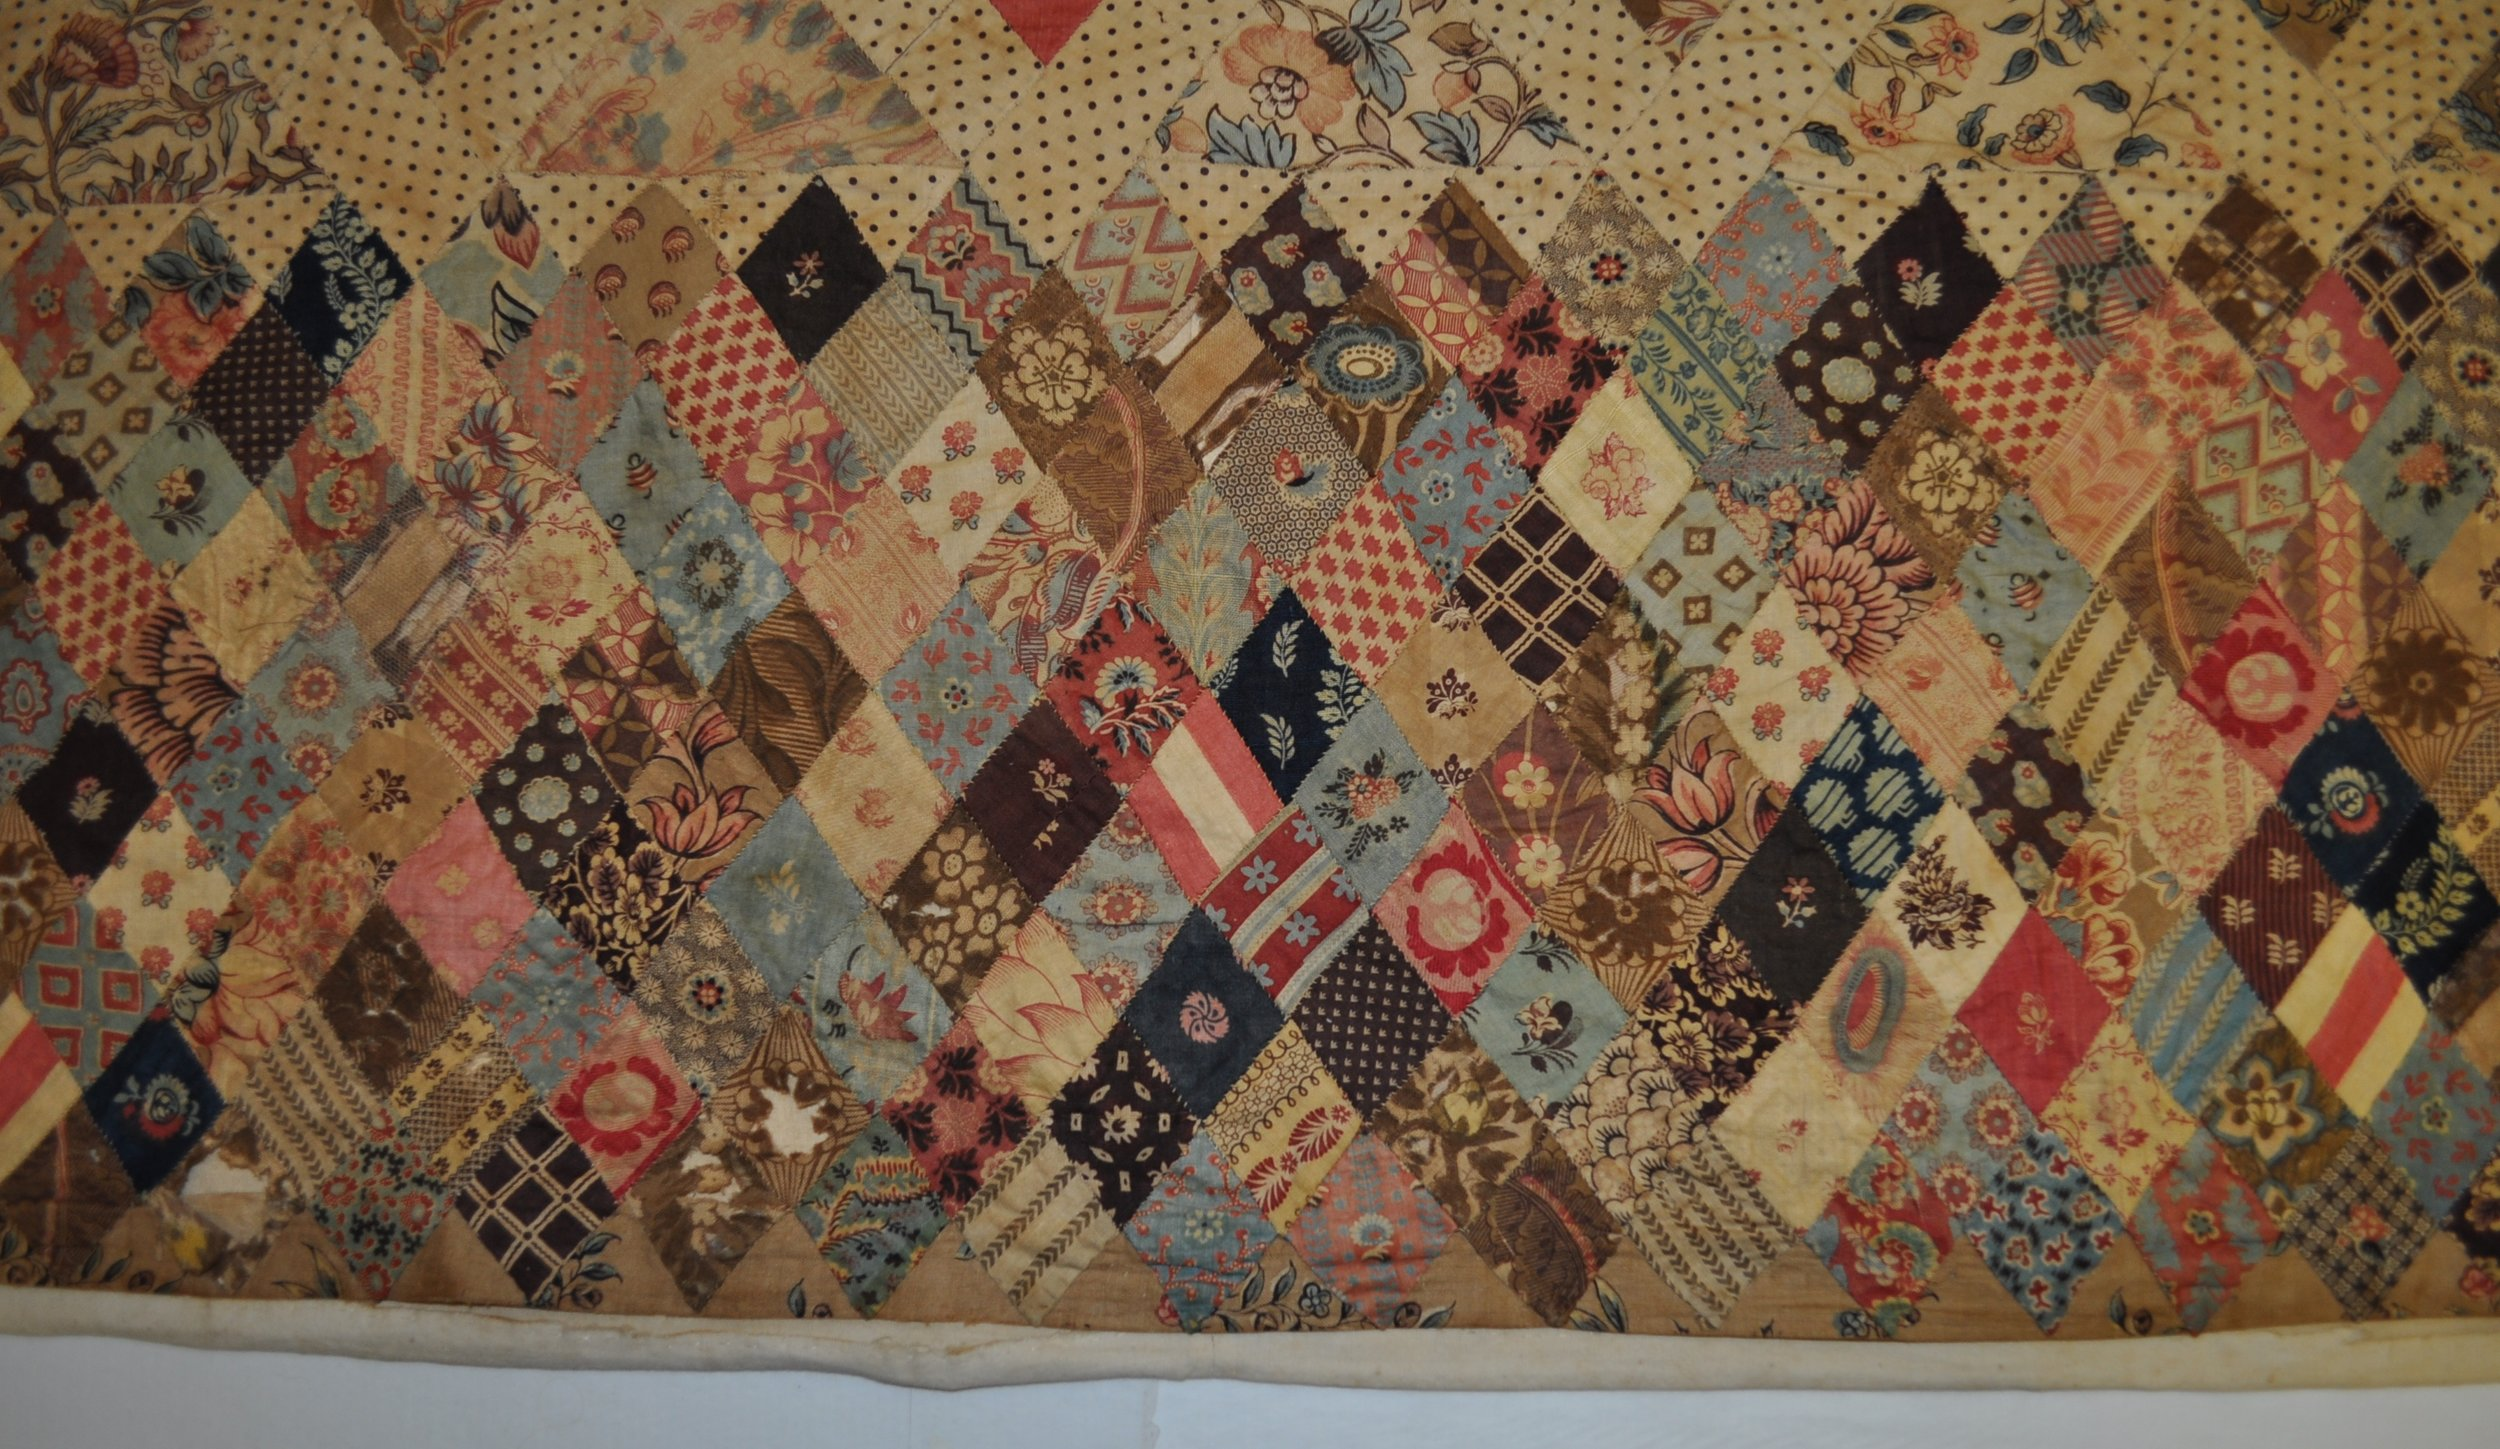 Detail showing the precise pattern symmetry in evidence across the entire patchwork panel